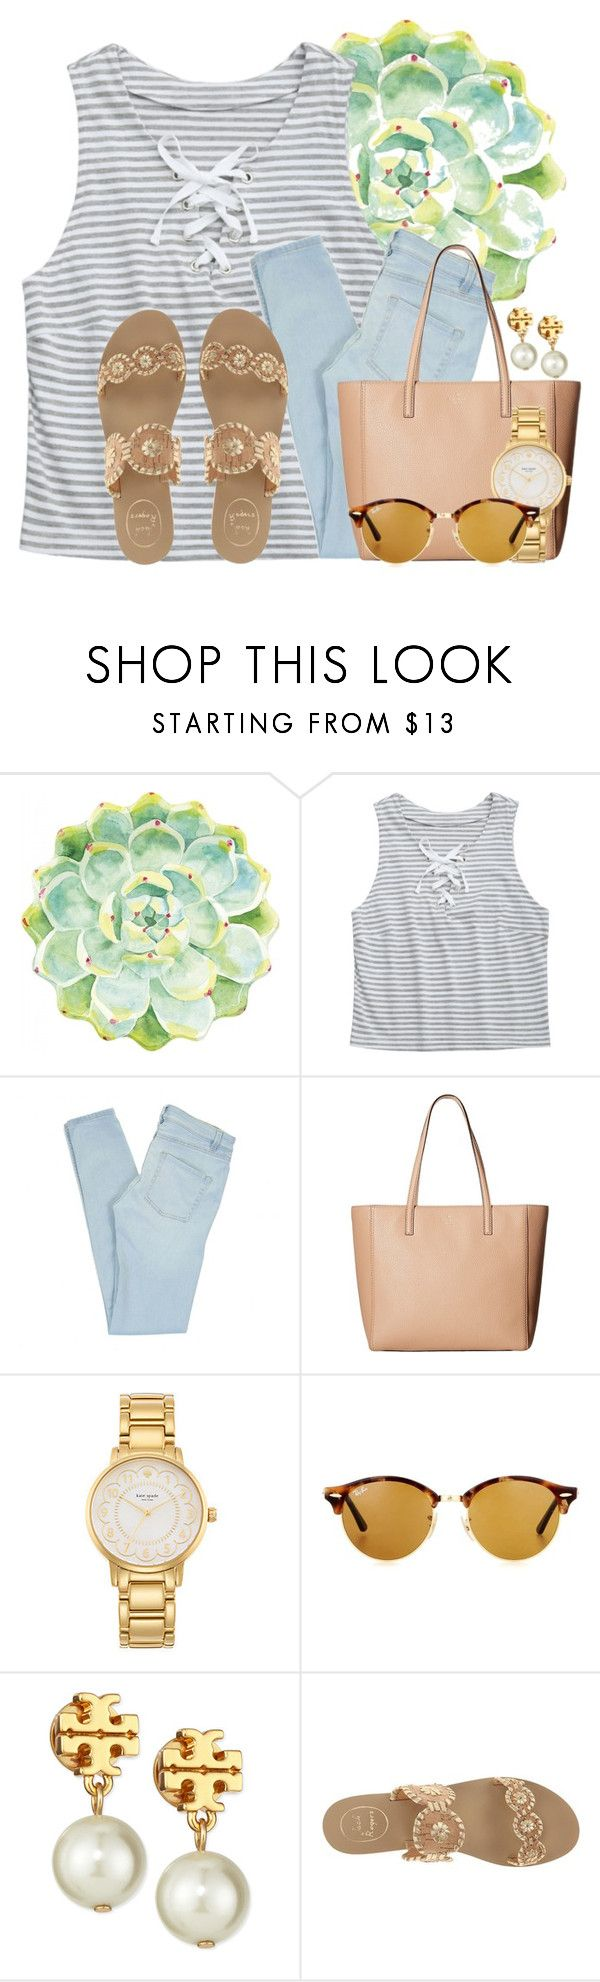 """""""Heading to the airport"""" by flroasburn ❤ liked on Polyvore featuring Merritt, Marc by Marc Jacobs, Kate Spade, Ray-Ban, Tory Burch and Jack Rogers"""